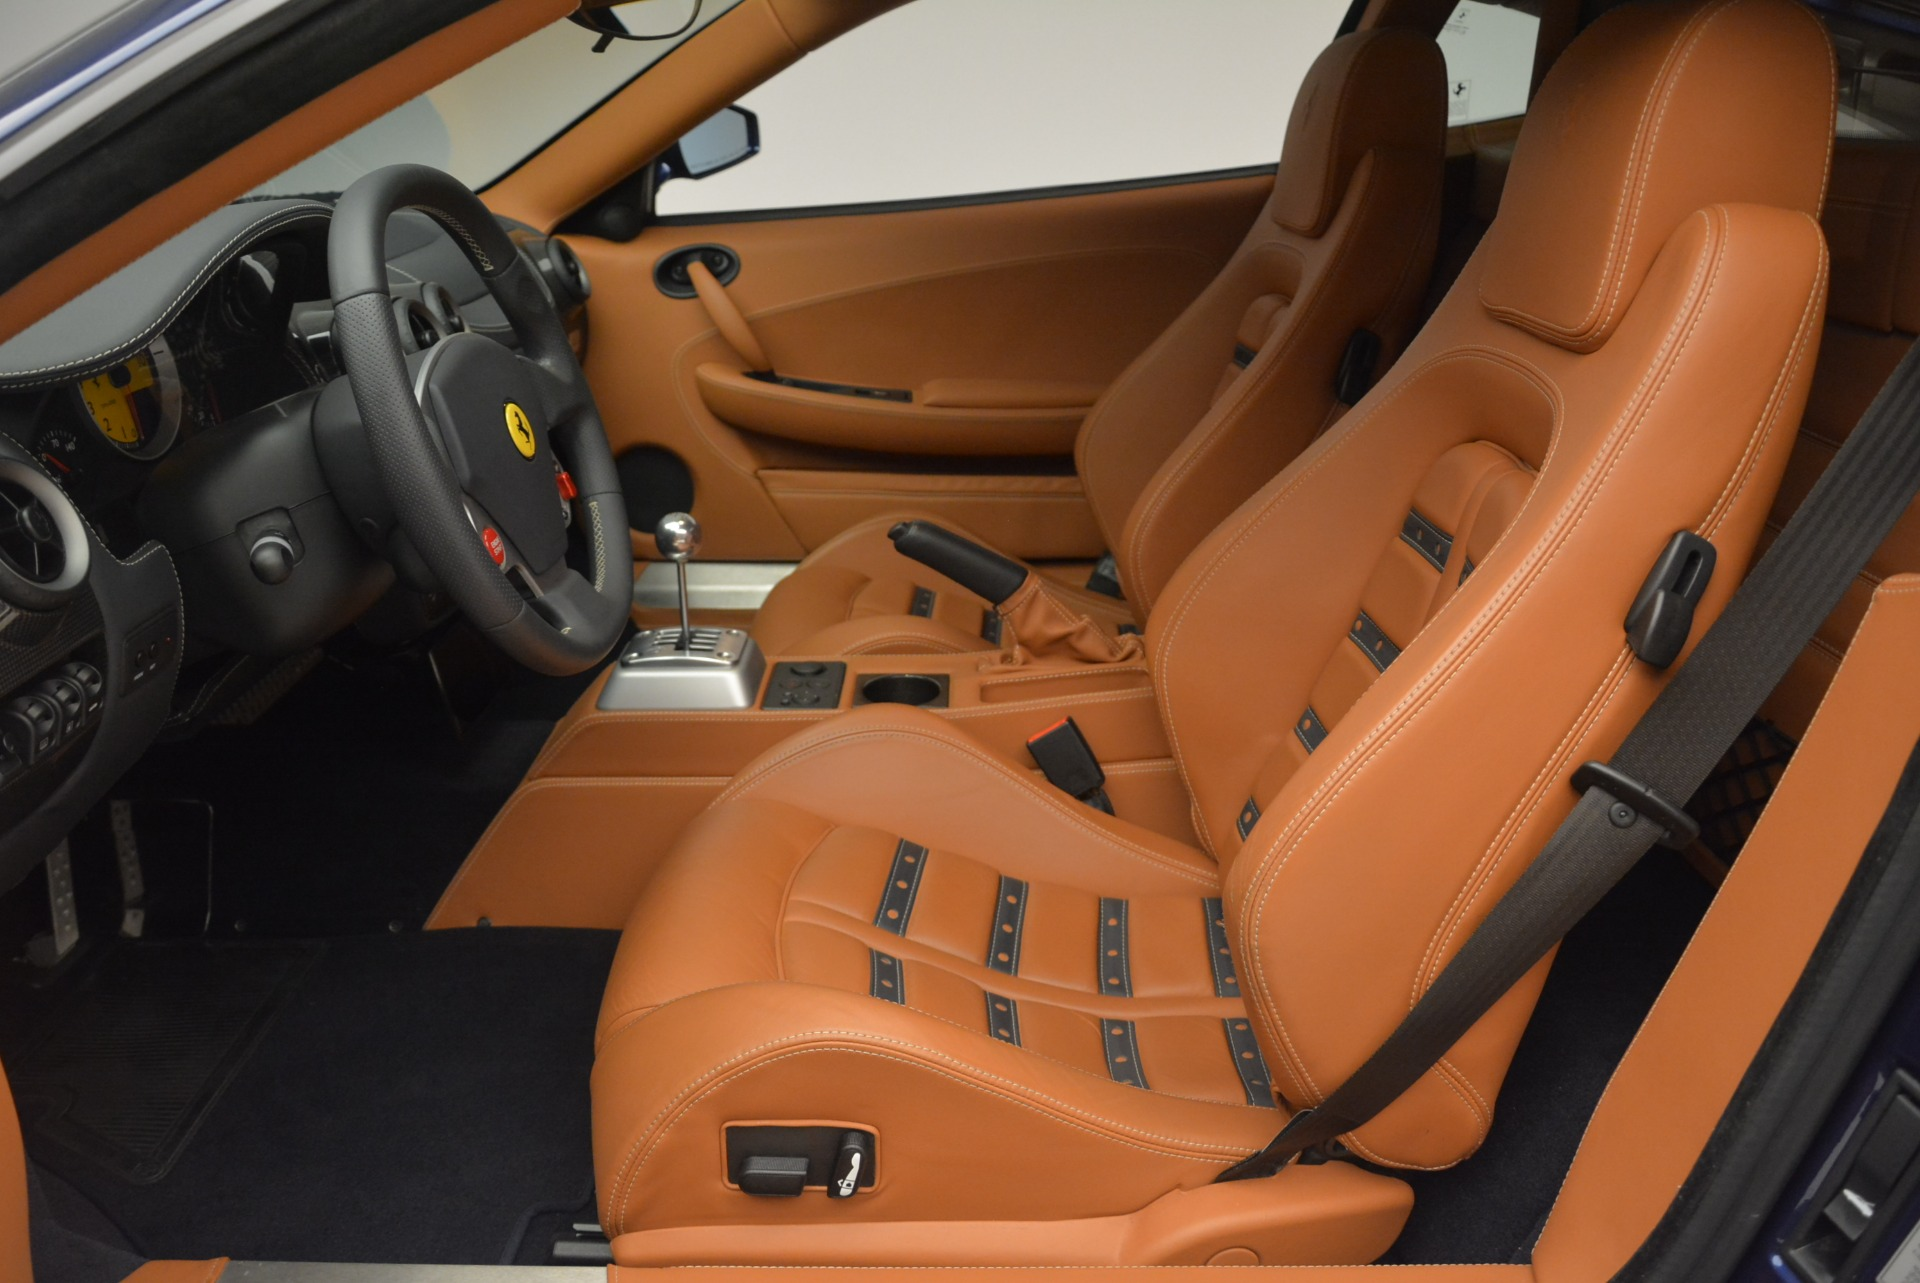 Used 2009 Ferrari F430 6-Speed Manual For Sale In Westport, CT 2466_p15